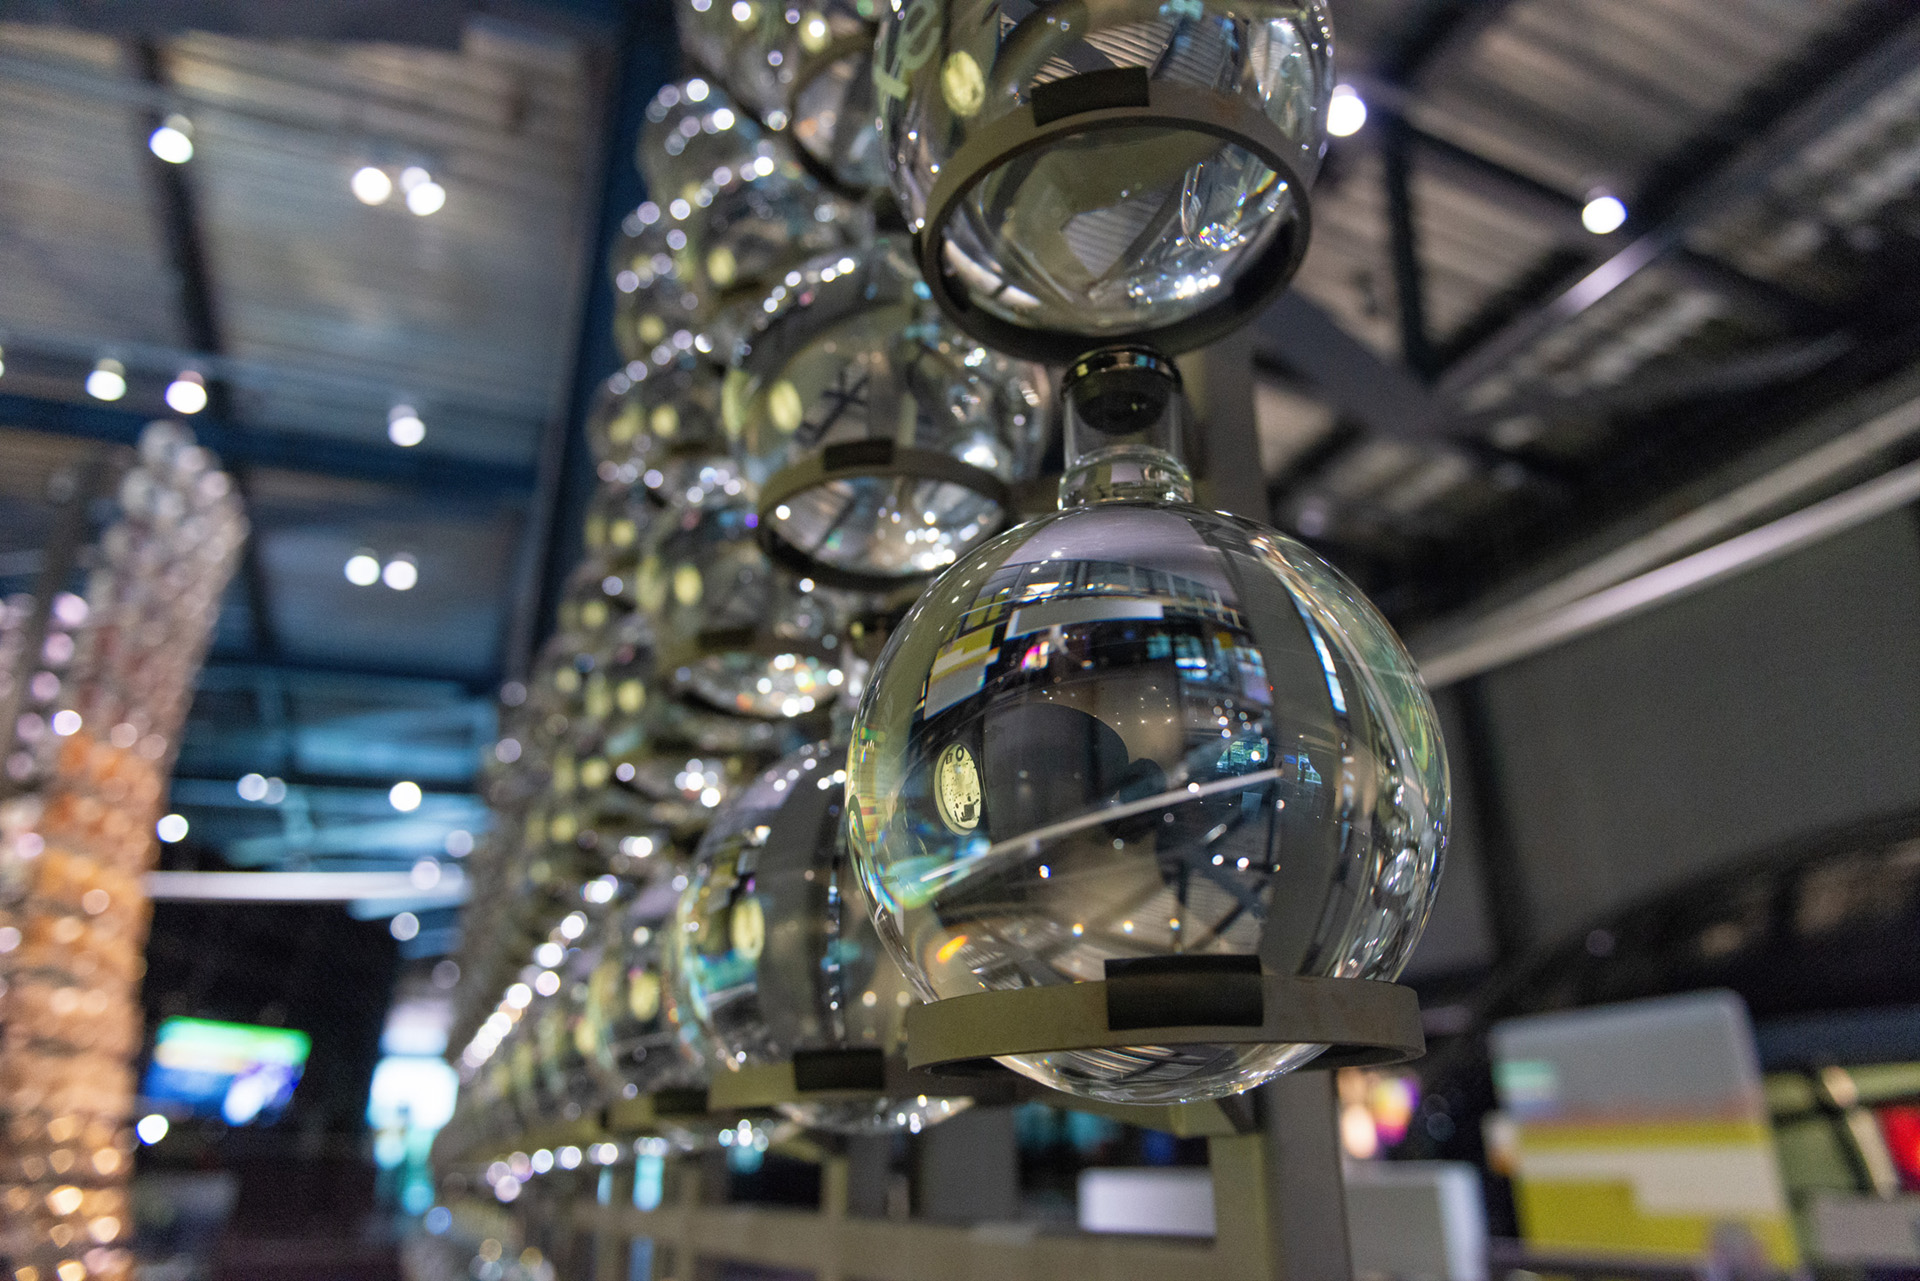 Periodic Table at the Corning Museum of Glass